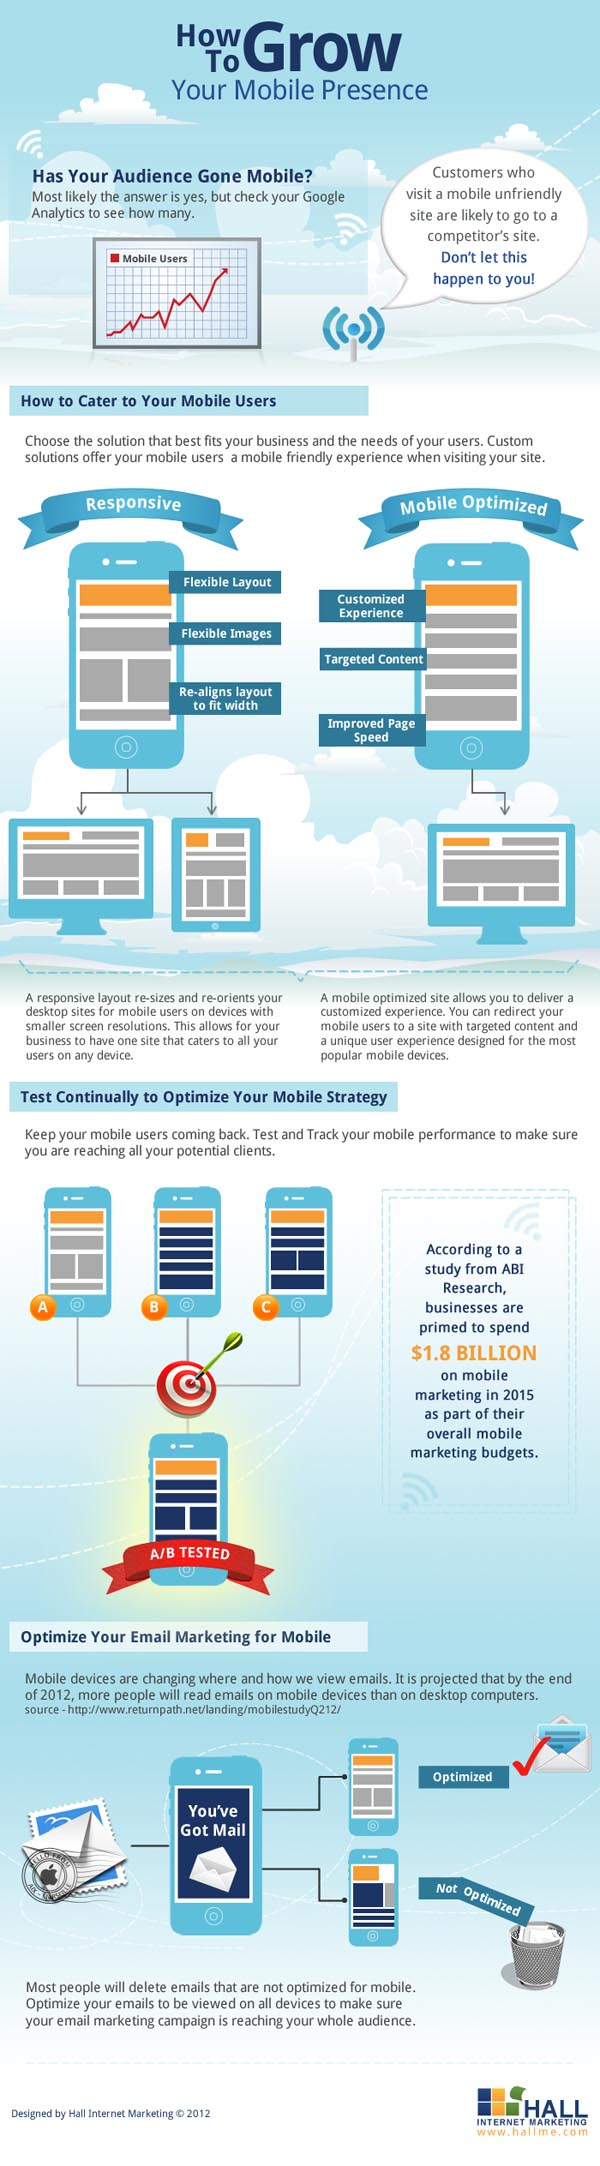 how to grow your mobile presence How to Grow Your Mobile Presence [Infographic]